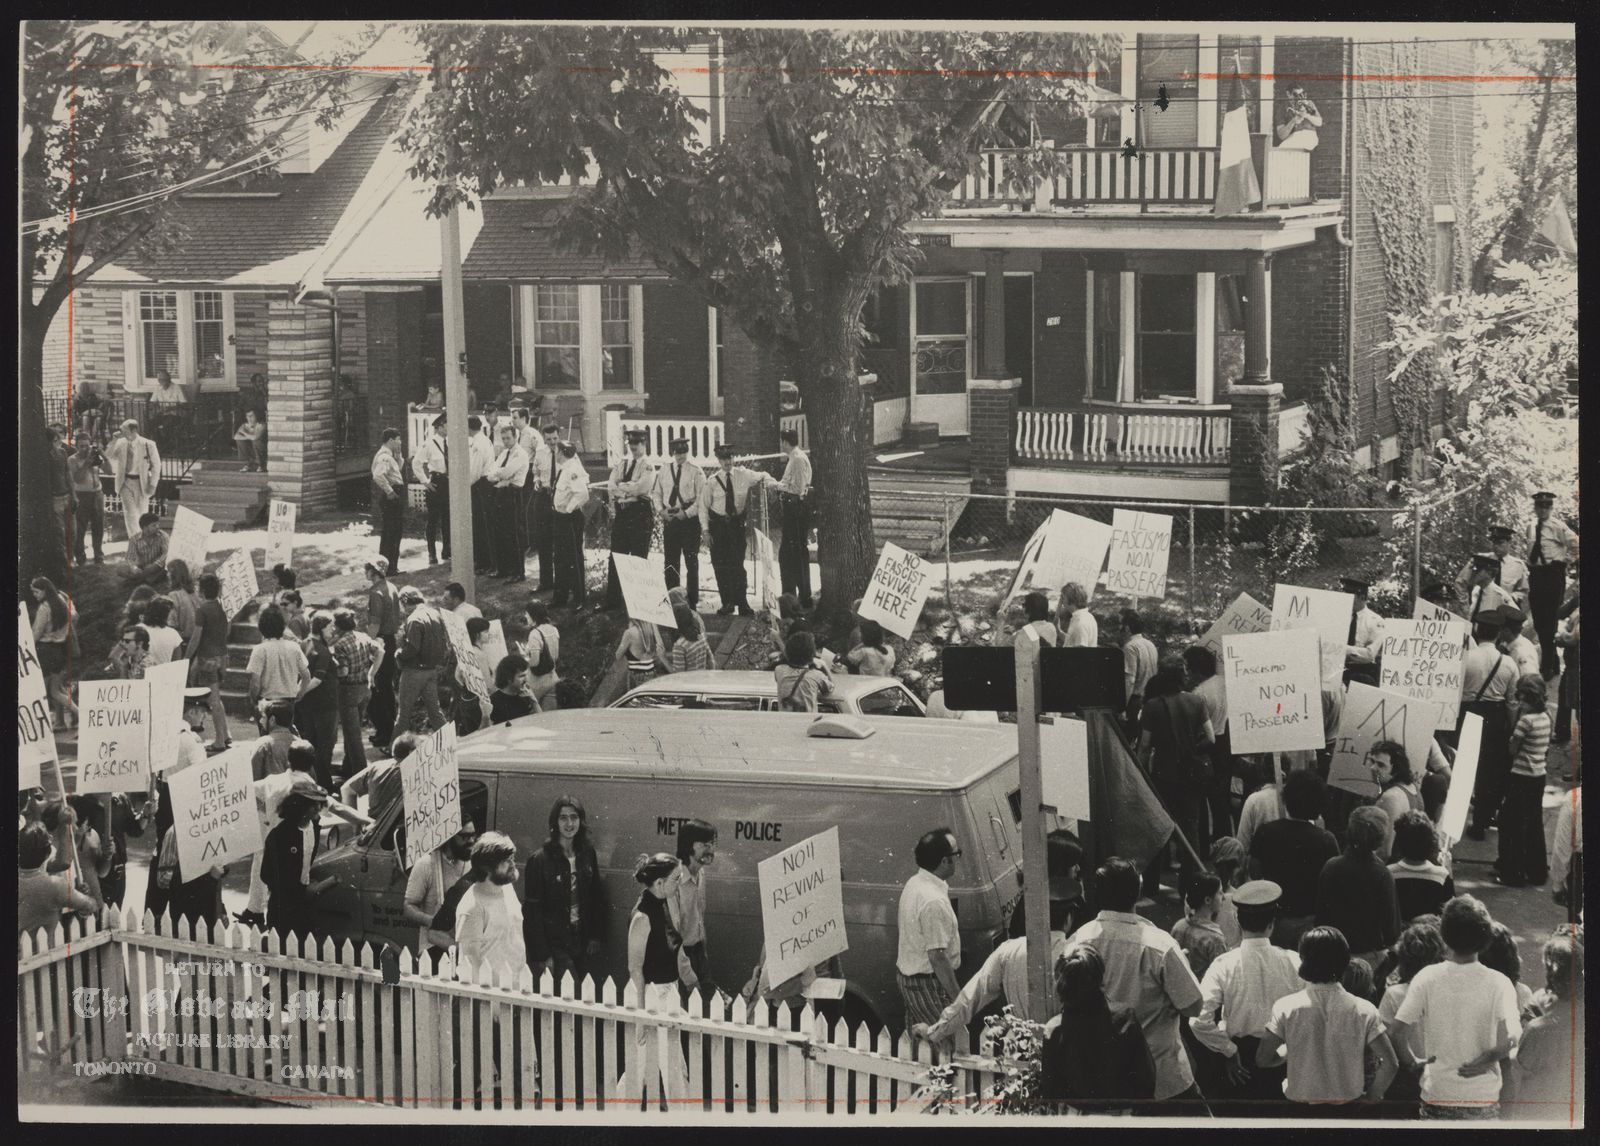 WESTERN GUARD Police stand in front of Ashdale Avenue house occupied by Western Guard Party while about 100 members of United Front march in the street.